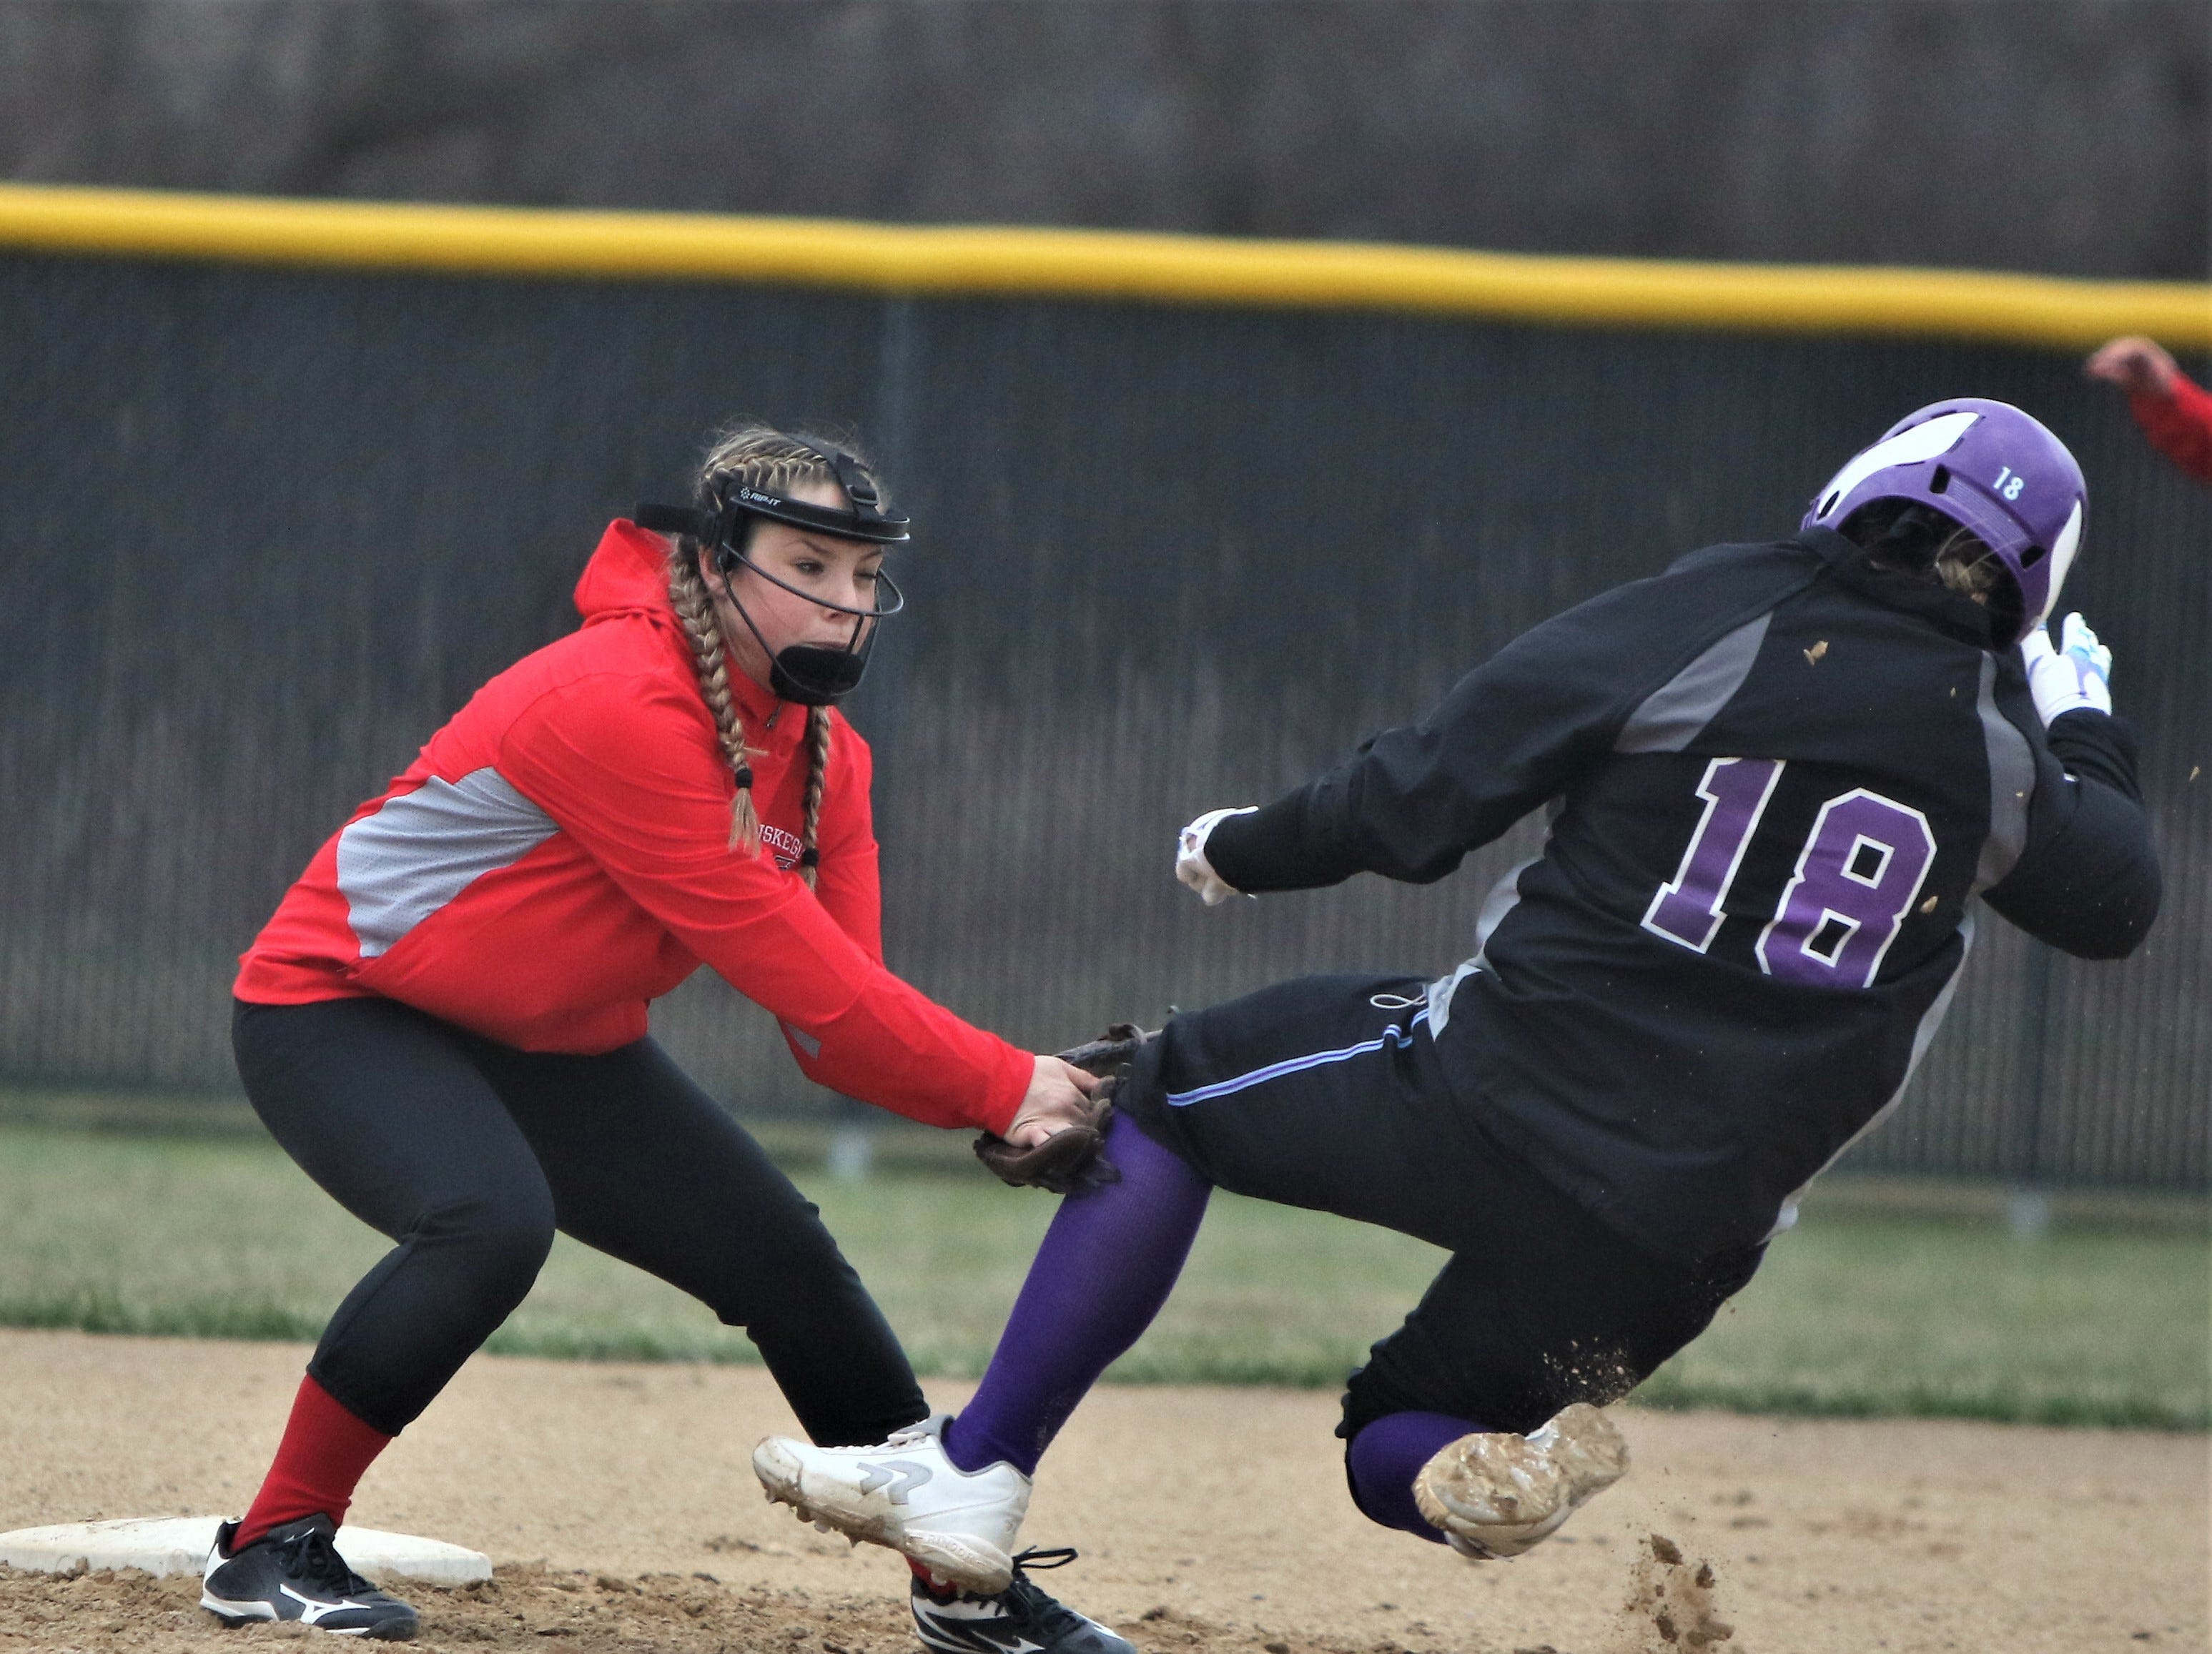 Waukesha North senior Maddy Anderson (18) is tagged out trying to steal second base against Muskego on April 12, 2019.